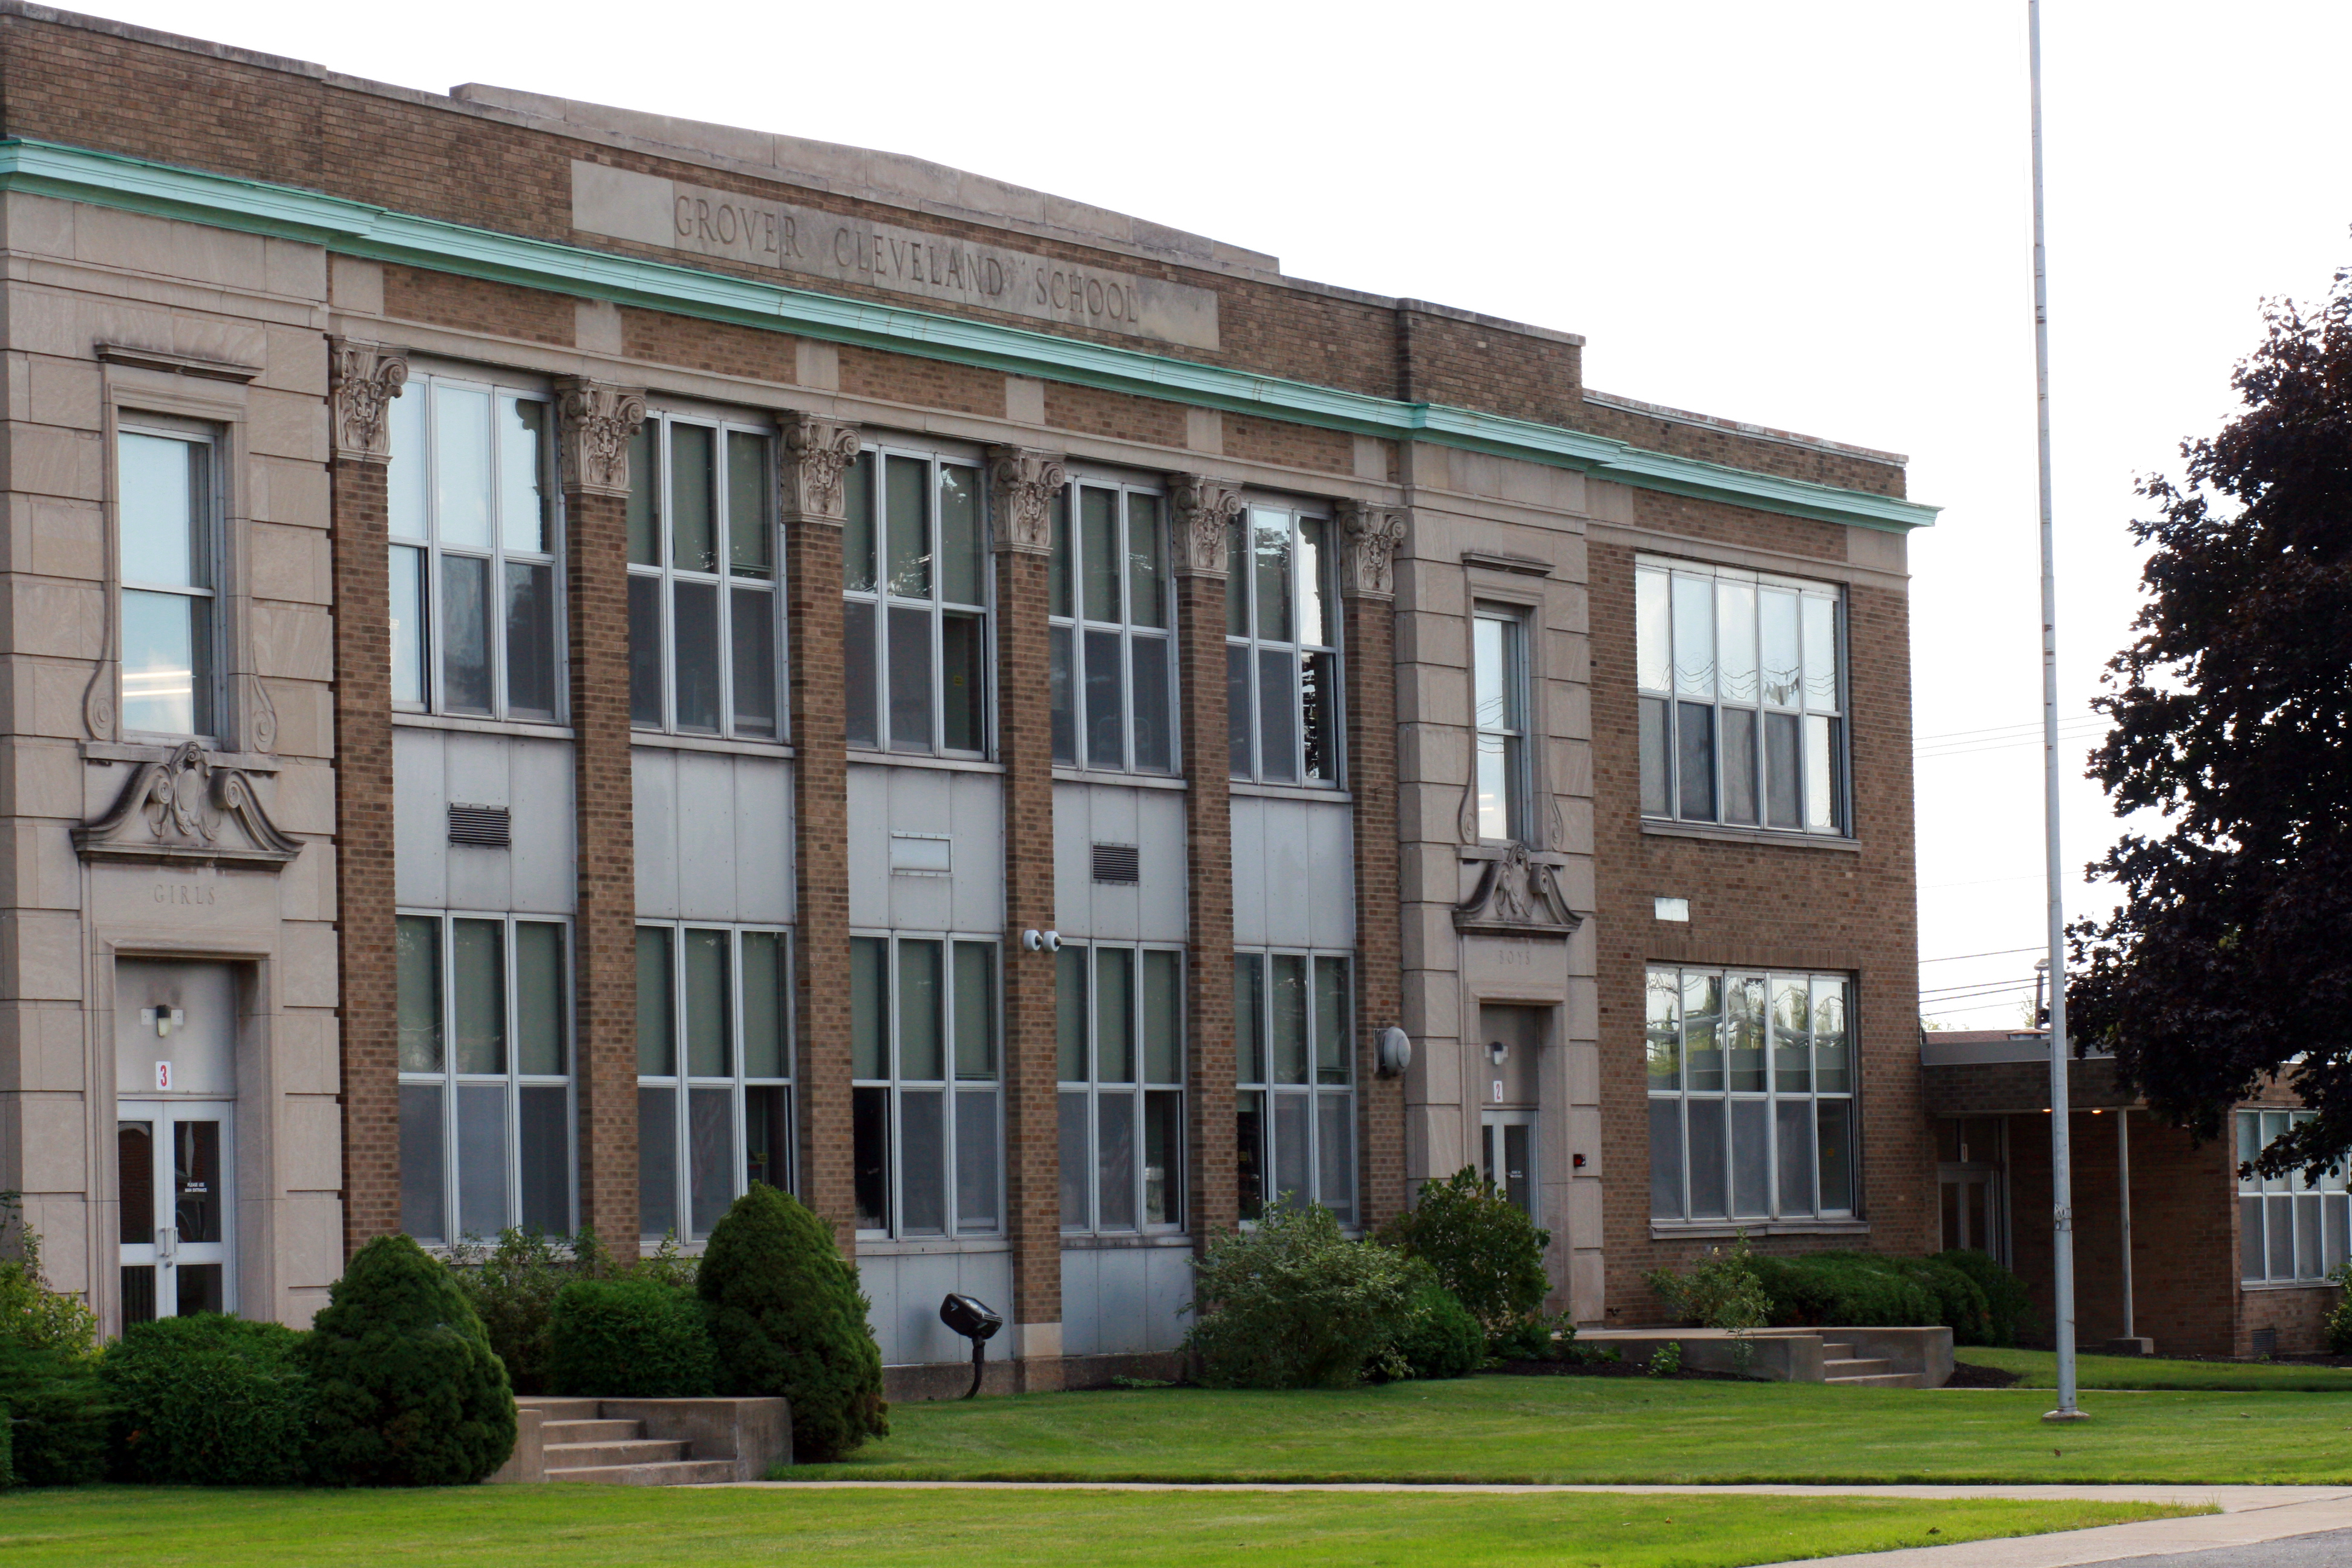 A photo of the Rossler campus school building